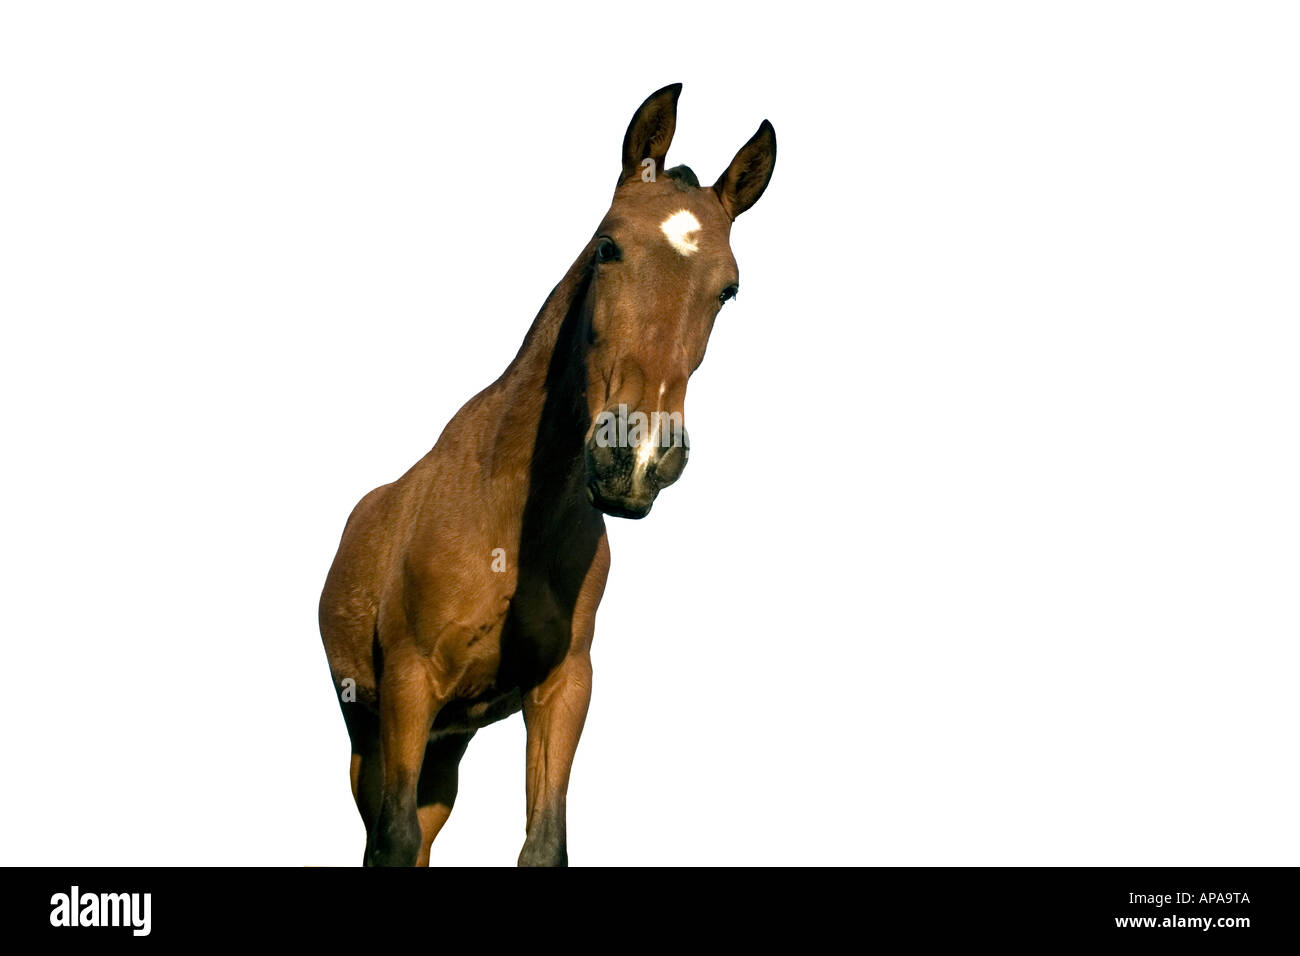 Spanish campo horse pony star stylised stylized cut out cut out plain white background - Stock Image